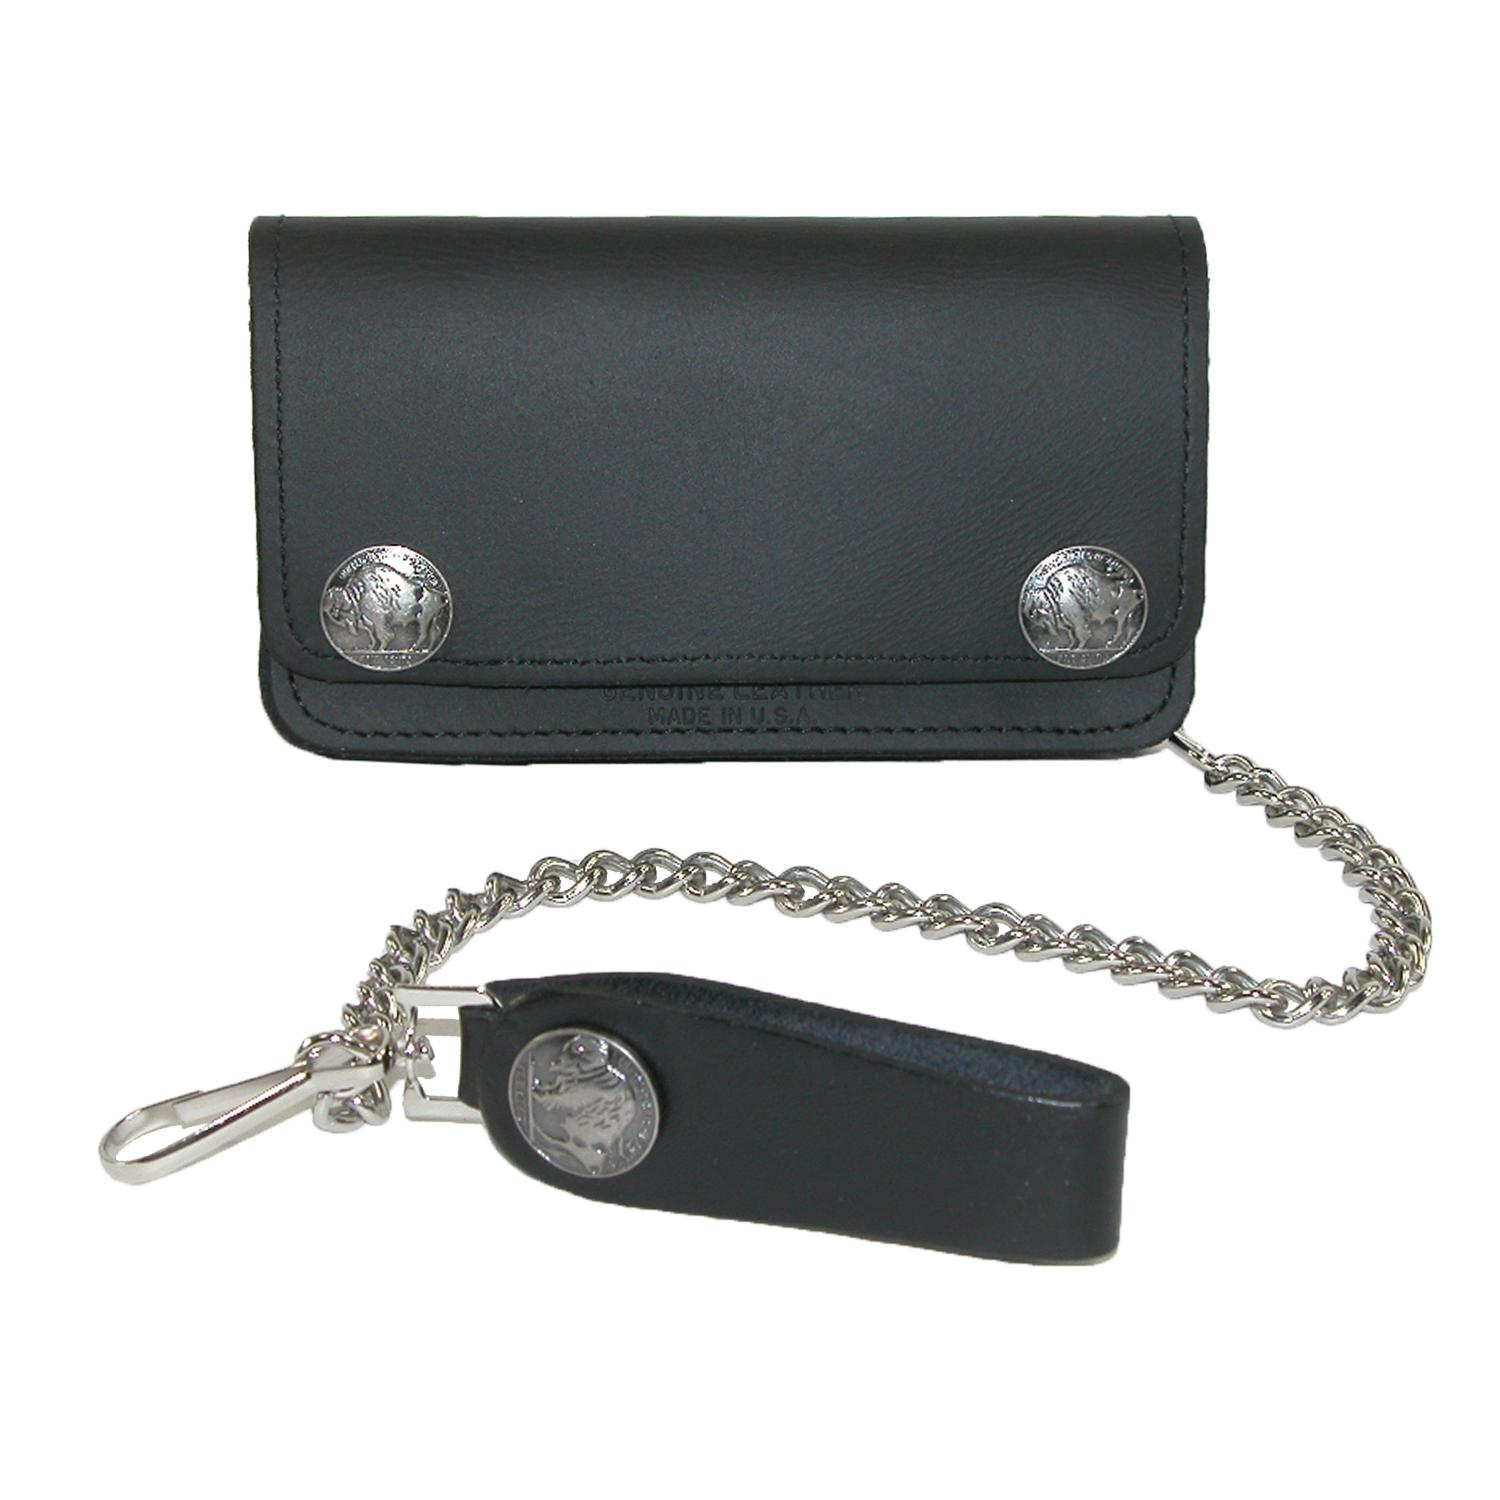 Iris_Tyler_Mens_Leather_and_Nickel_Snaps_Chain_Trucker_Wallet__Black